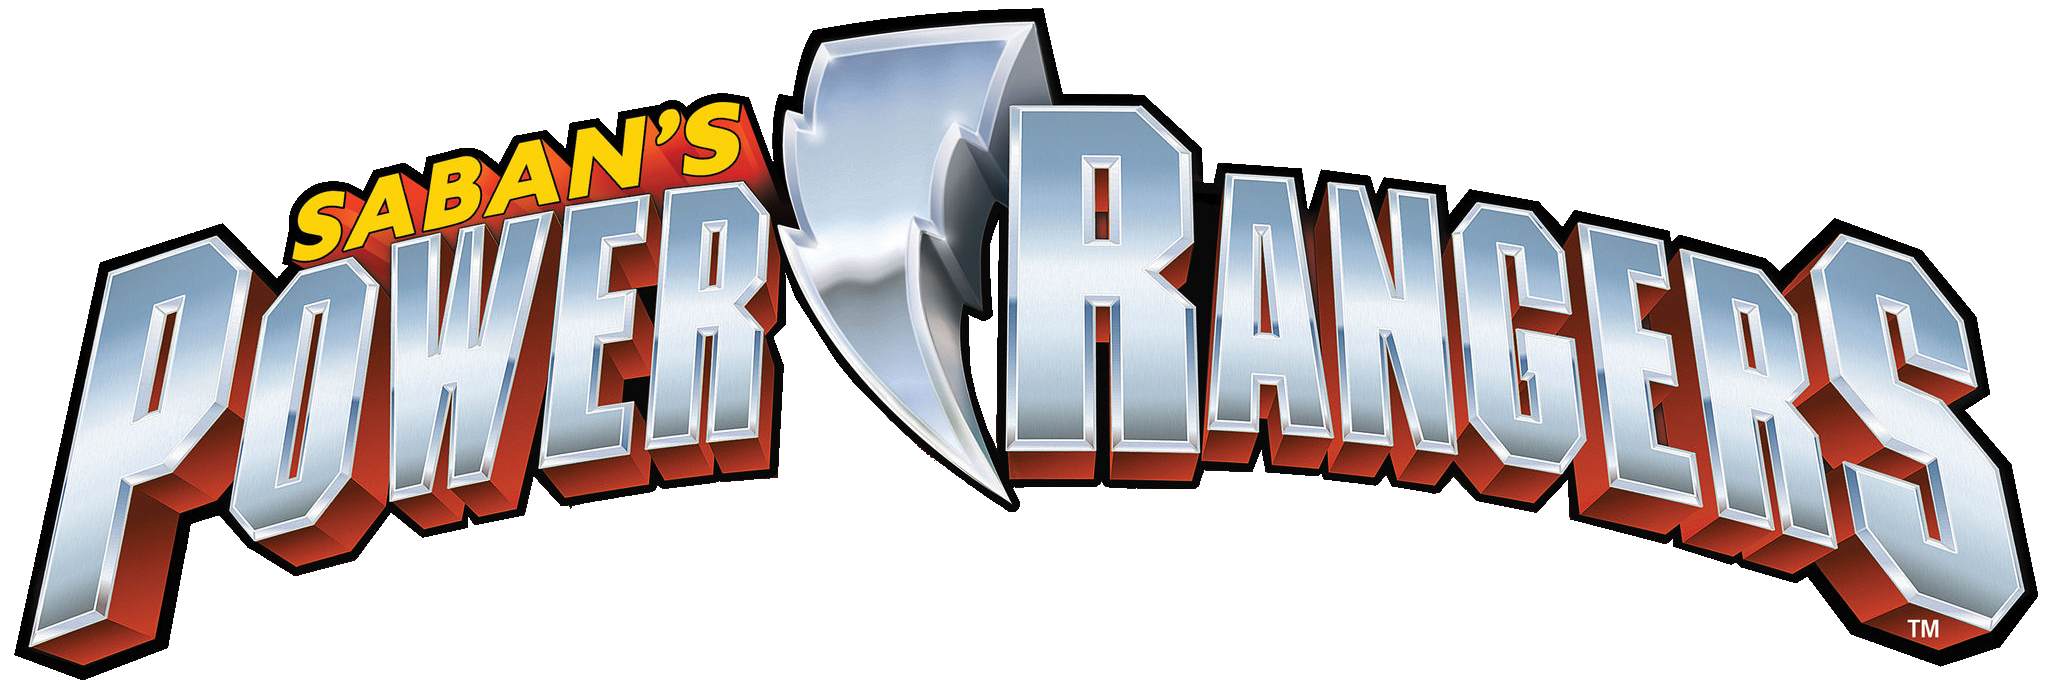 Power_rangers_logo_saban_2